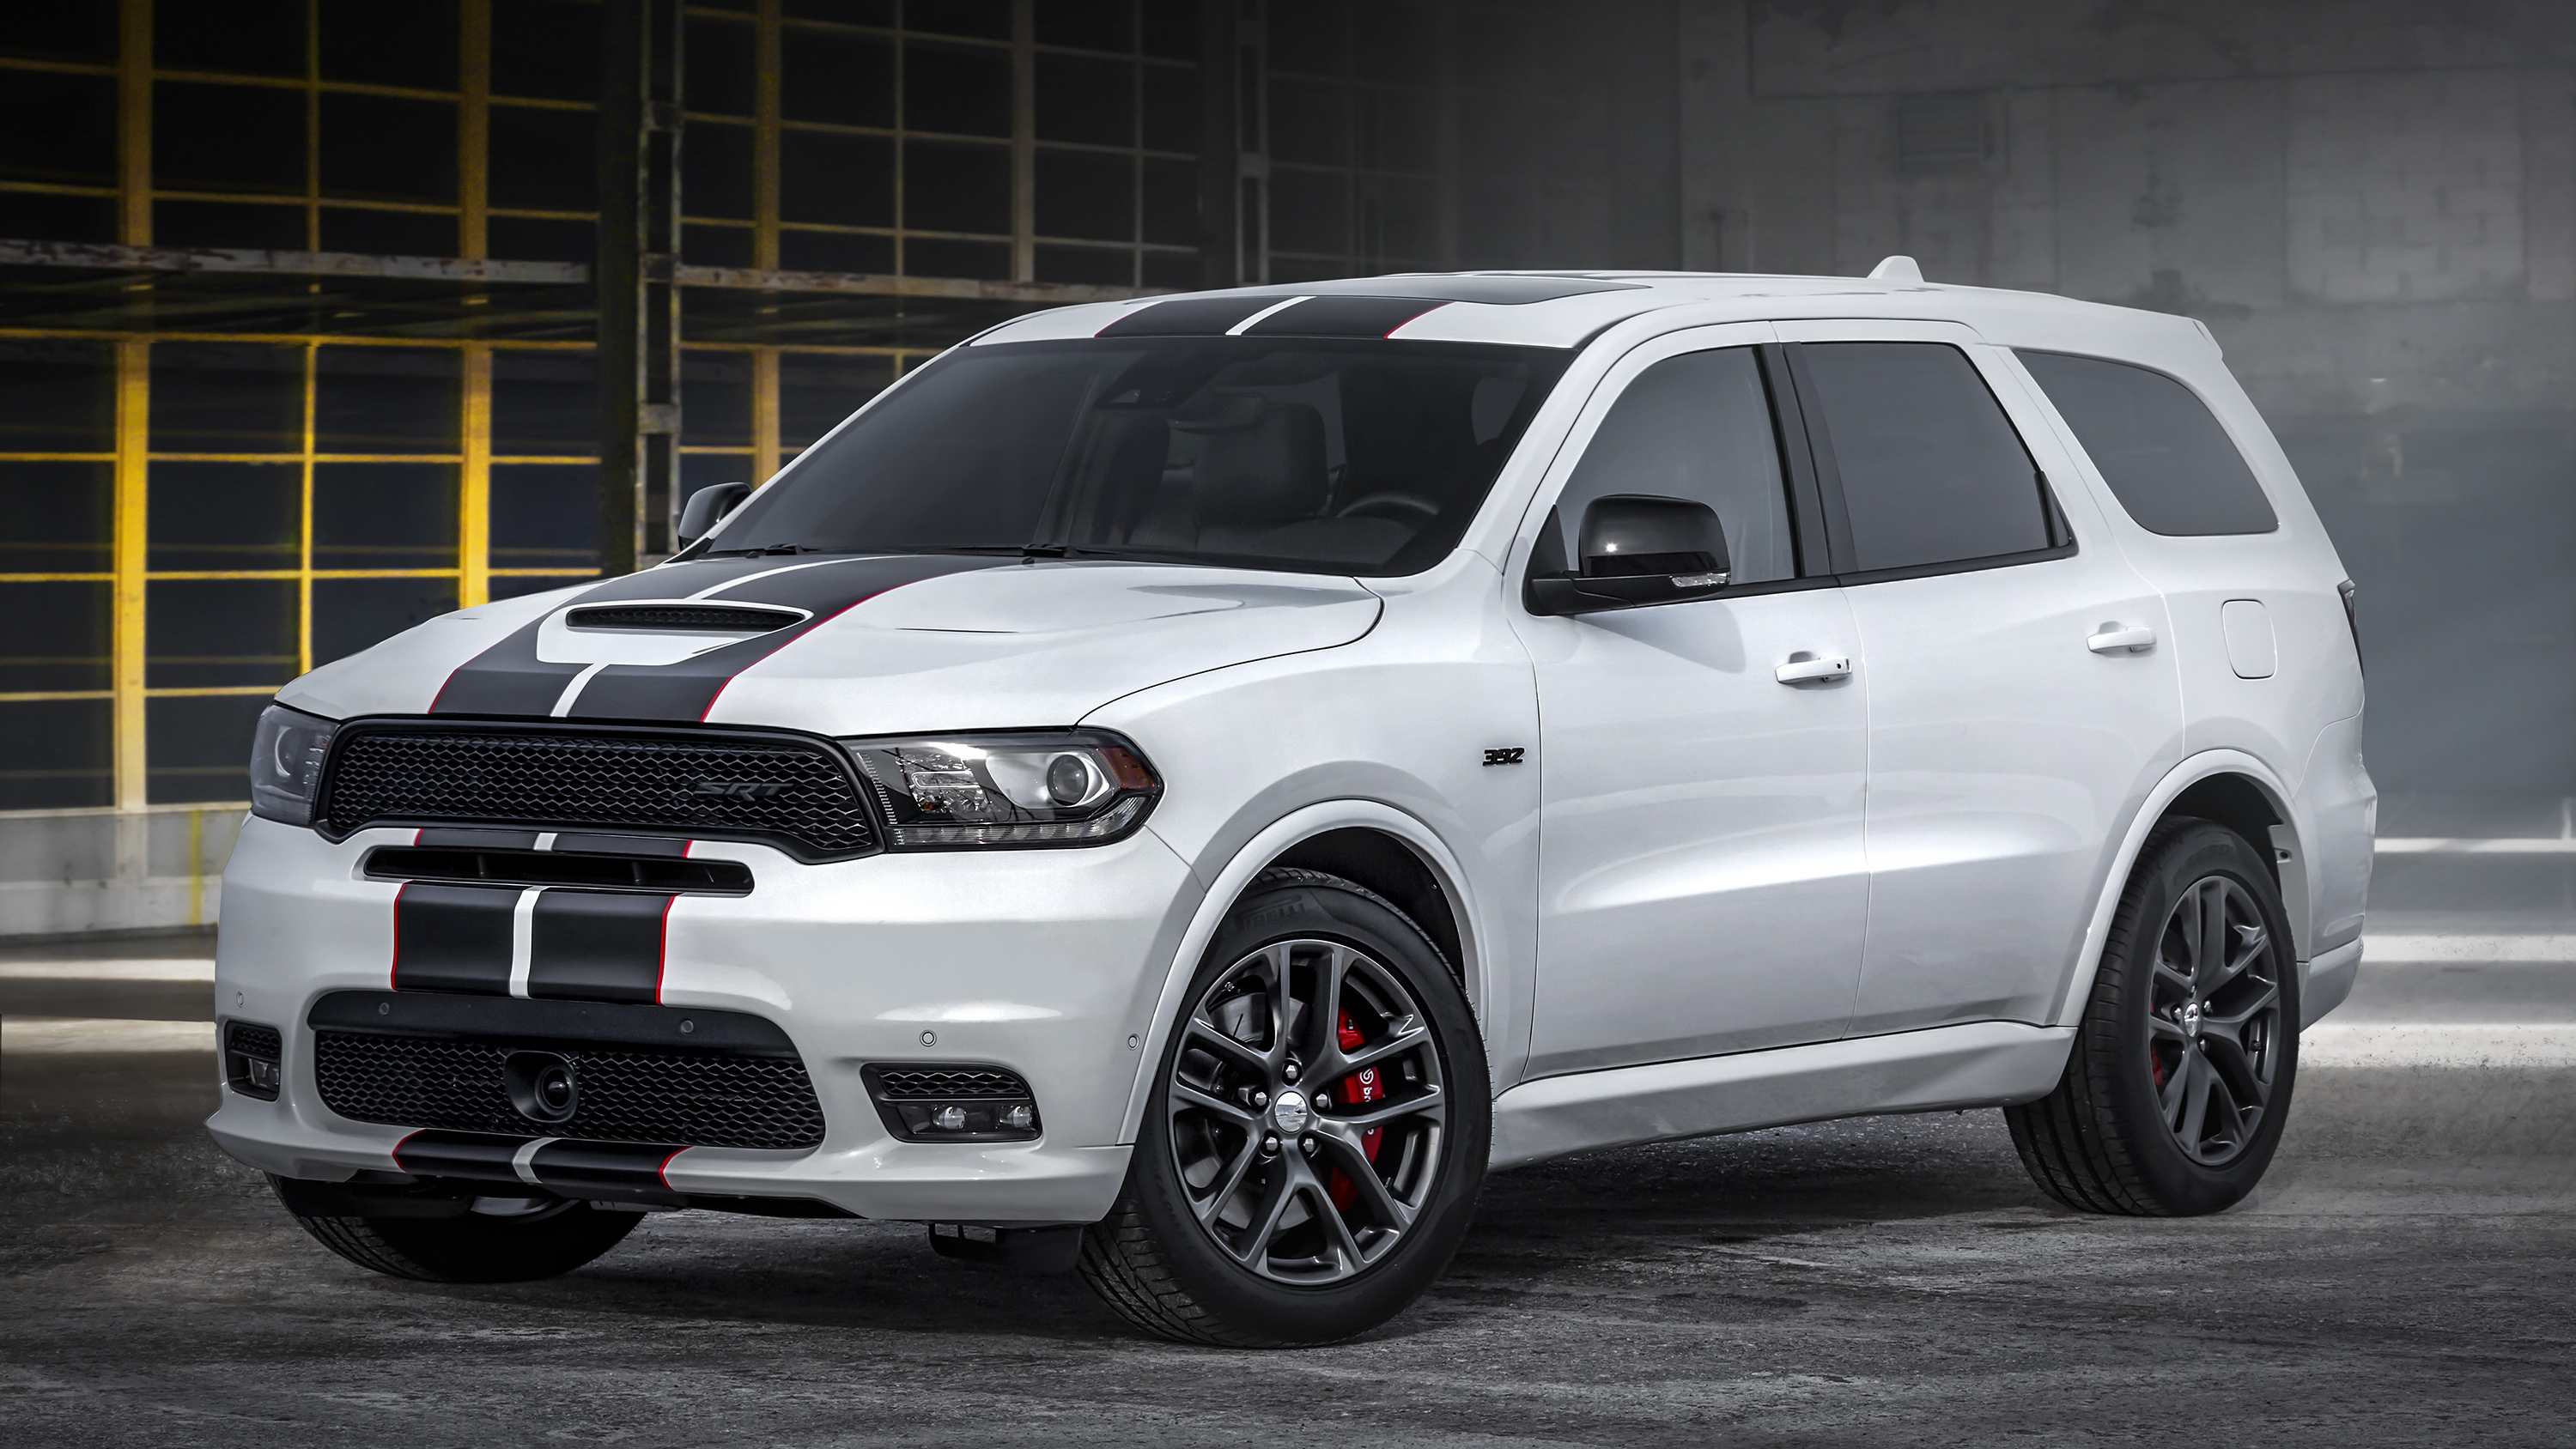 2020 Dodge Durango Srt Black Appearance Package Wallpaper Hd Car Wallpapers Id 14190